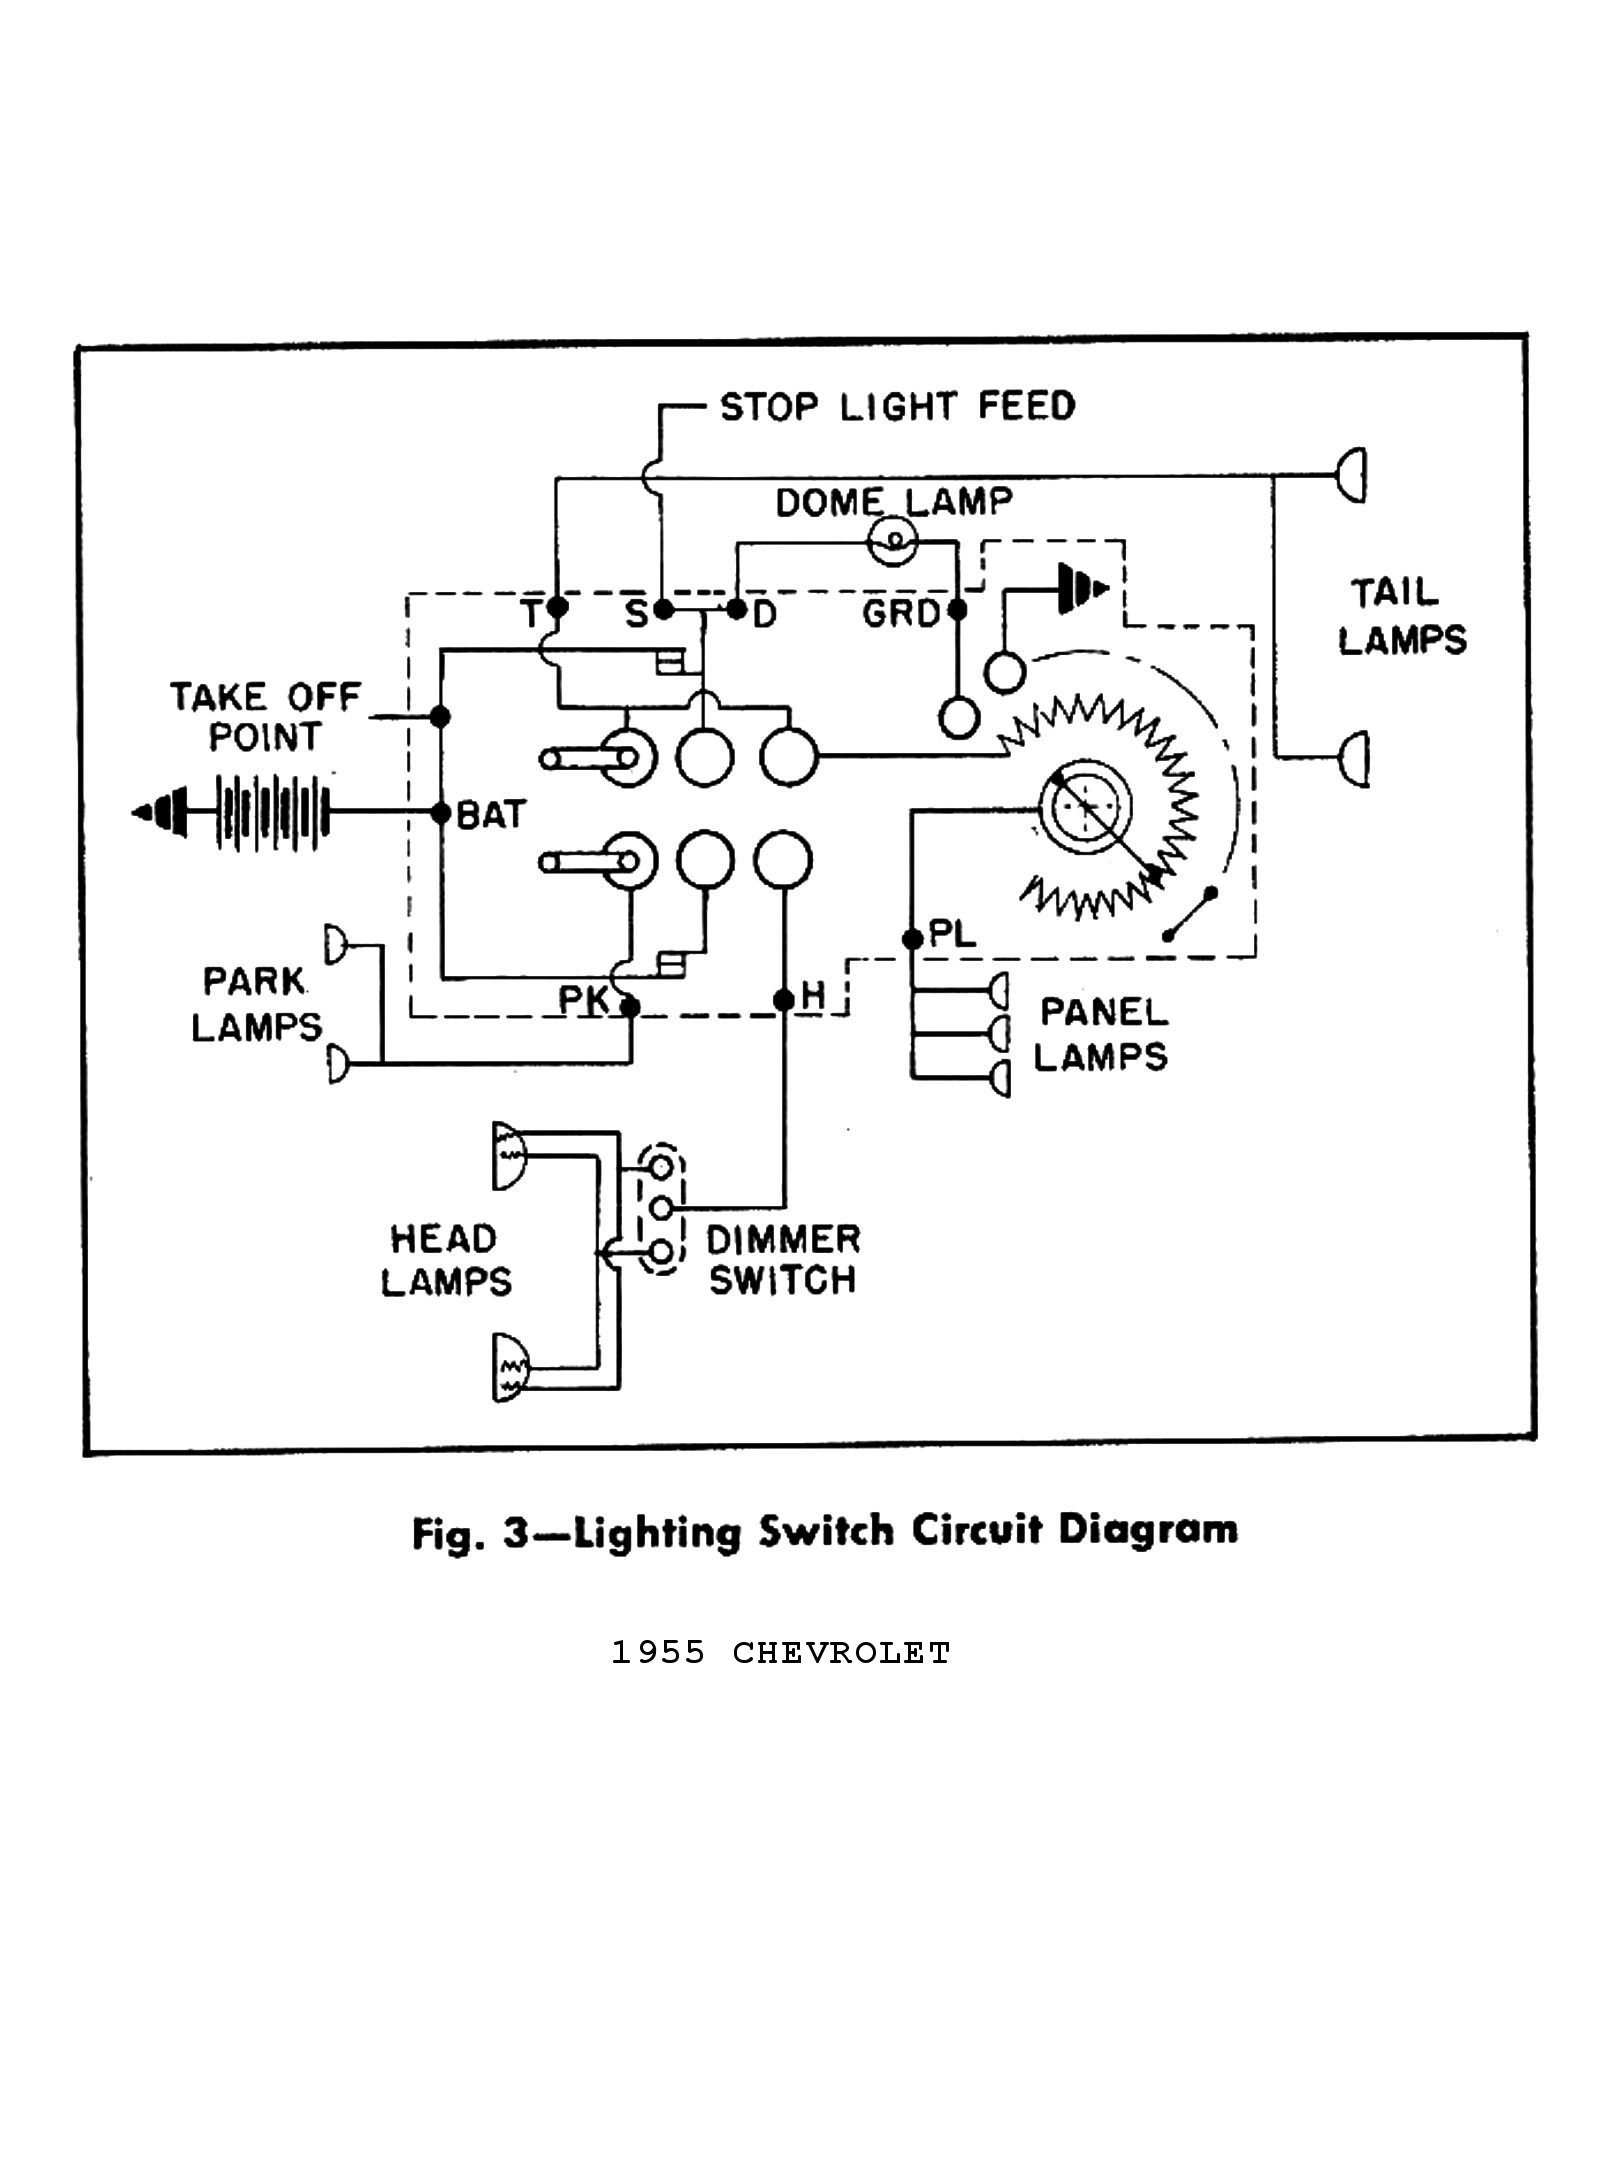 Chevy Wiring Diagrams Switch Diagram 1955 Truck Electric Windows Seats Lighting Circuit